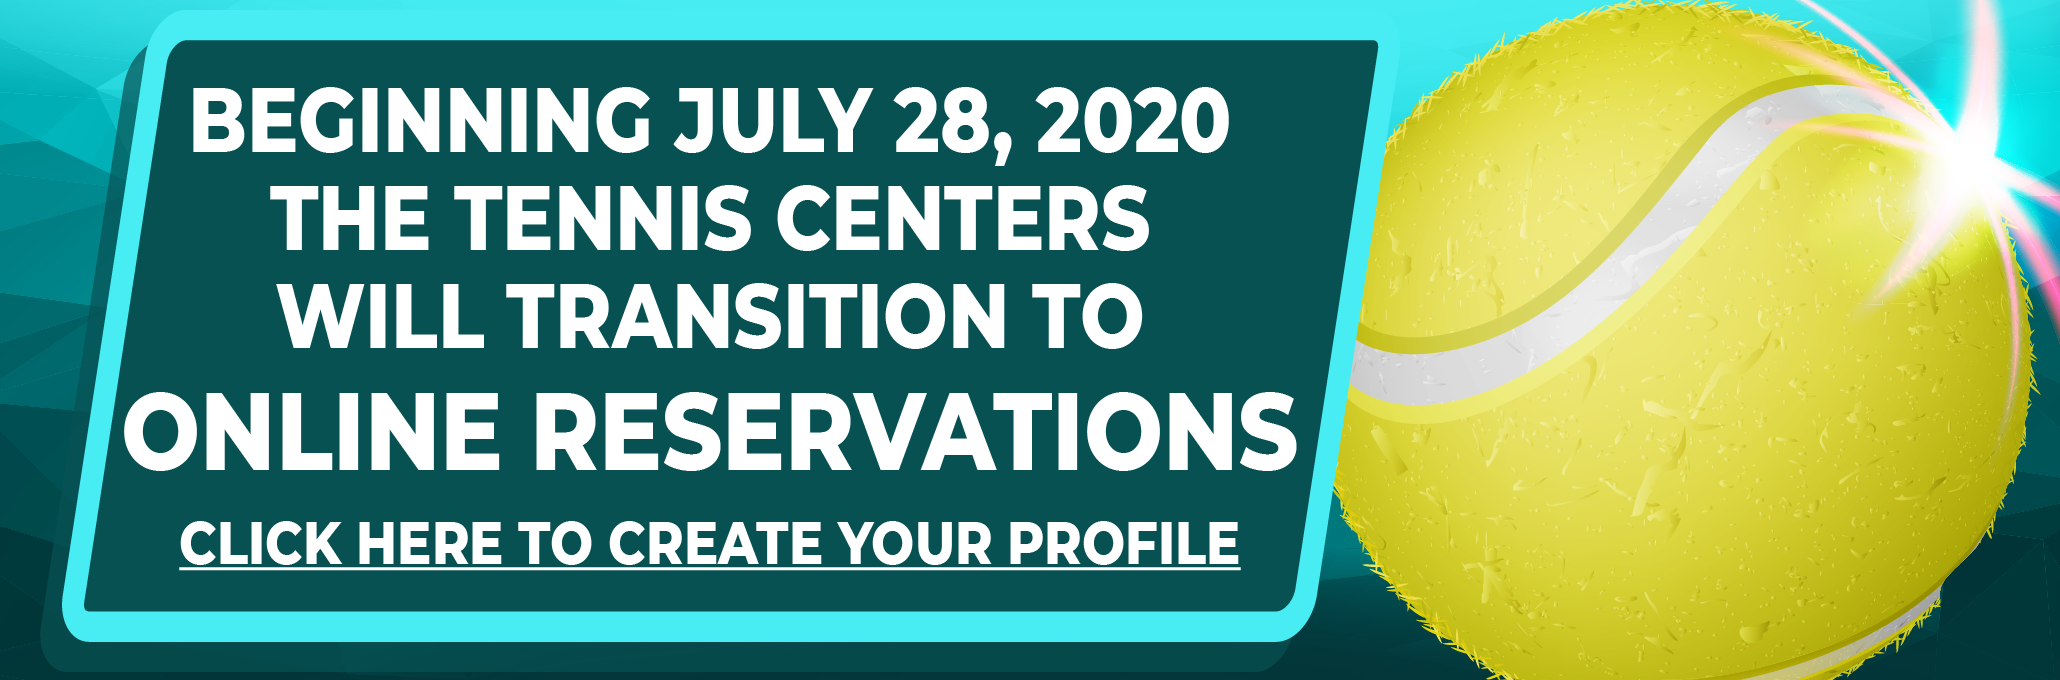 BEGINNING JULY 28 THE TENNIS CENTERS WILL TRANSITION TO ONLINE RESERVATIONS. CLICK HERE TO CREATE YOUR PROFILE.